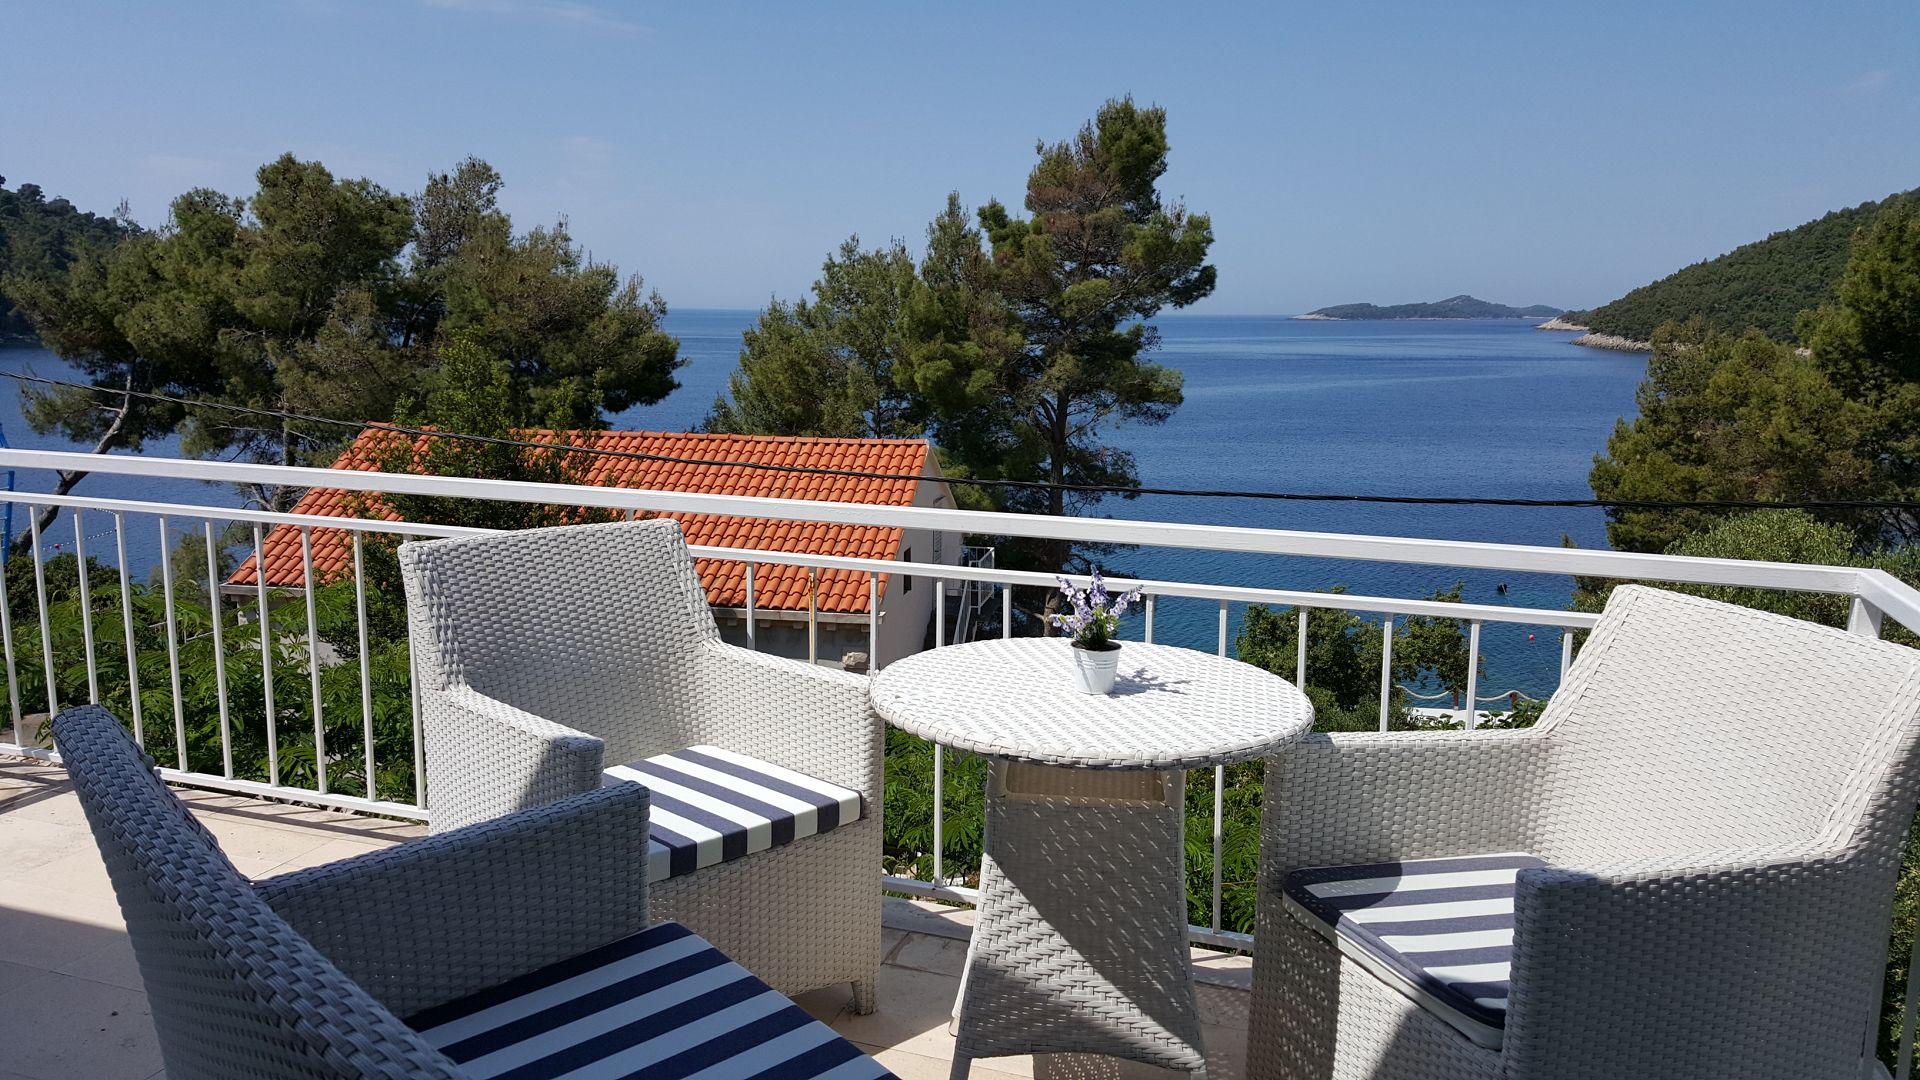 Holiday Homes, Brna, Island of Korčula - Holiday houses, villas  Villa Antea